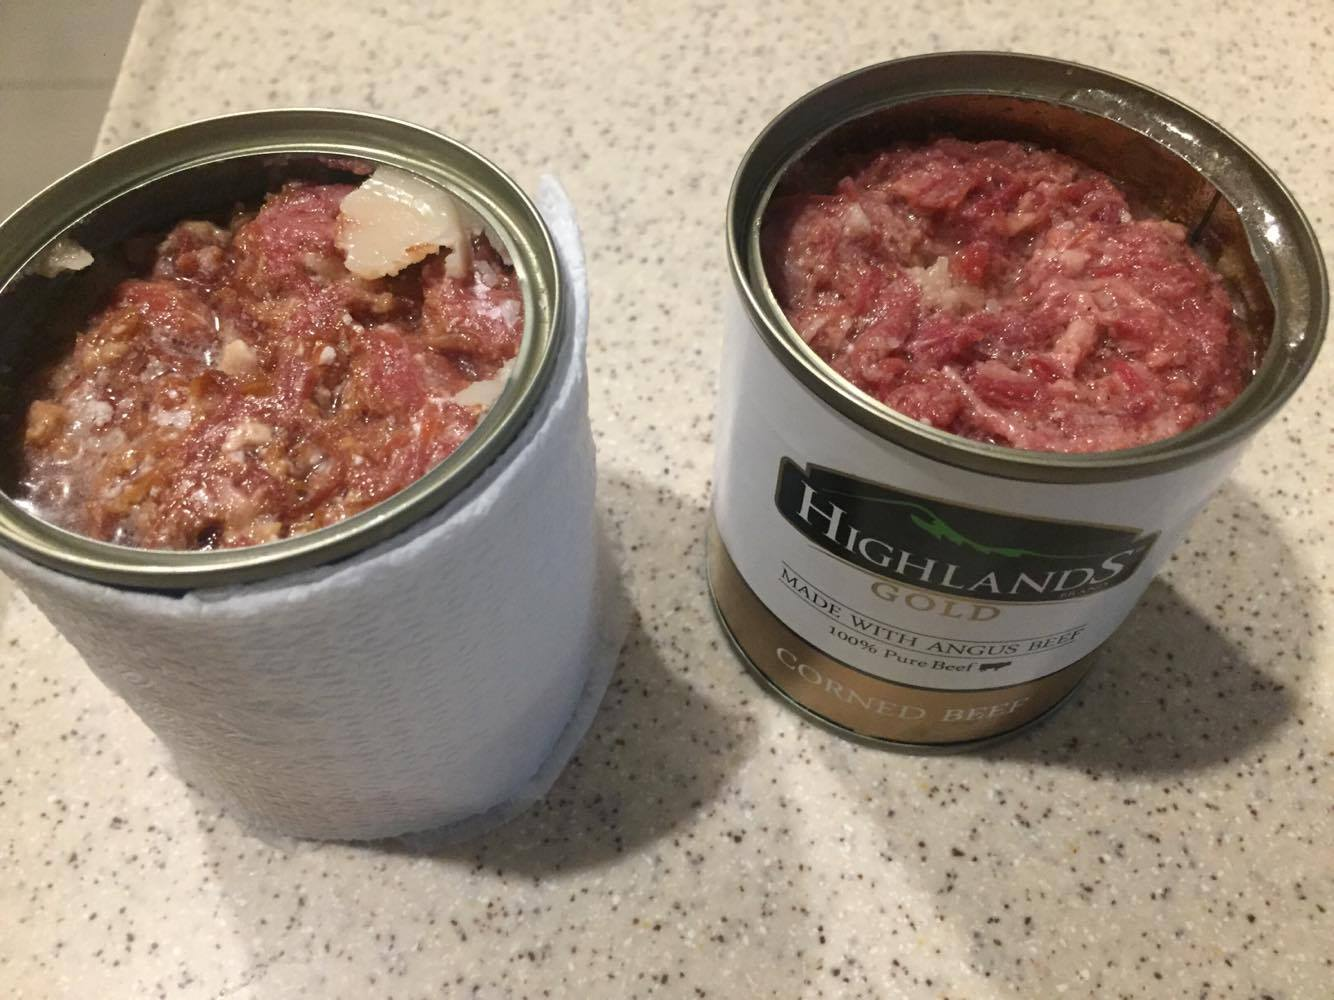 Brand X vs Highlands Gold Corned Beef